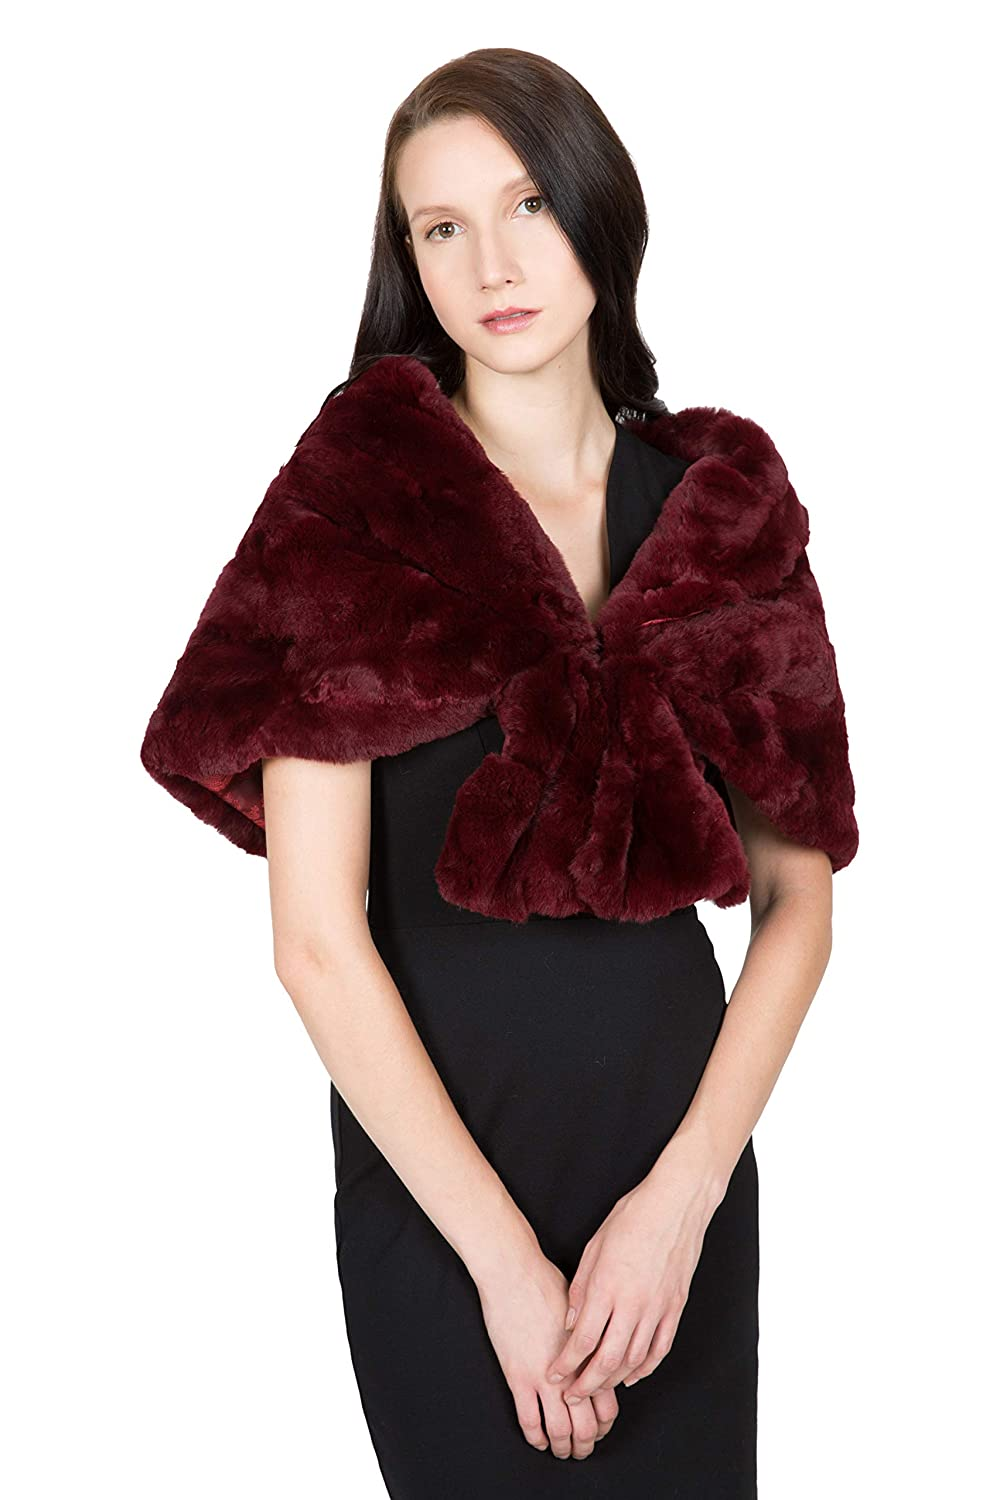 OBURLA™ Women's Genuine Real Rex Rabbit Fur Wrap Cape Shawl Stole (Wine)